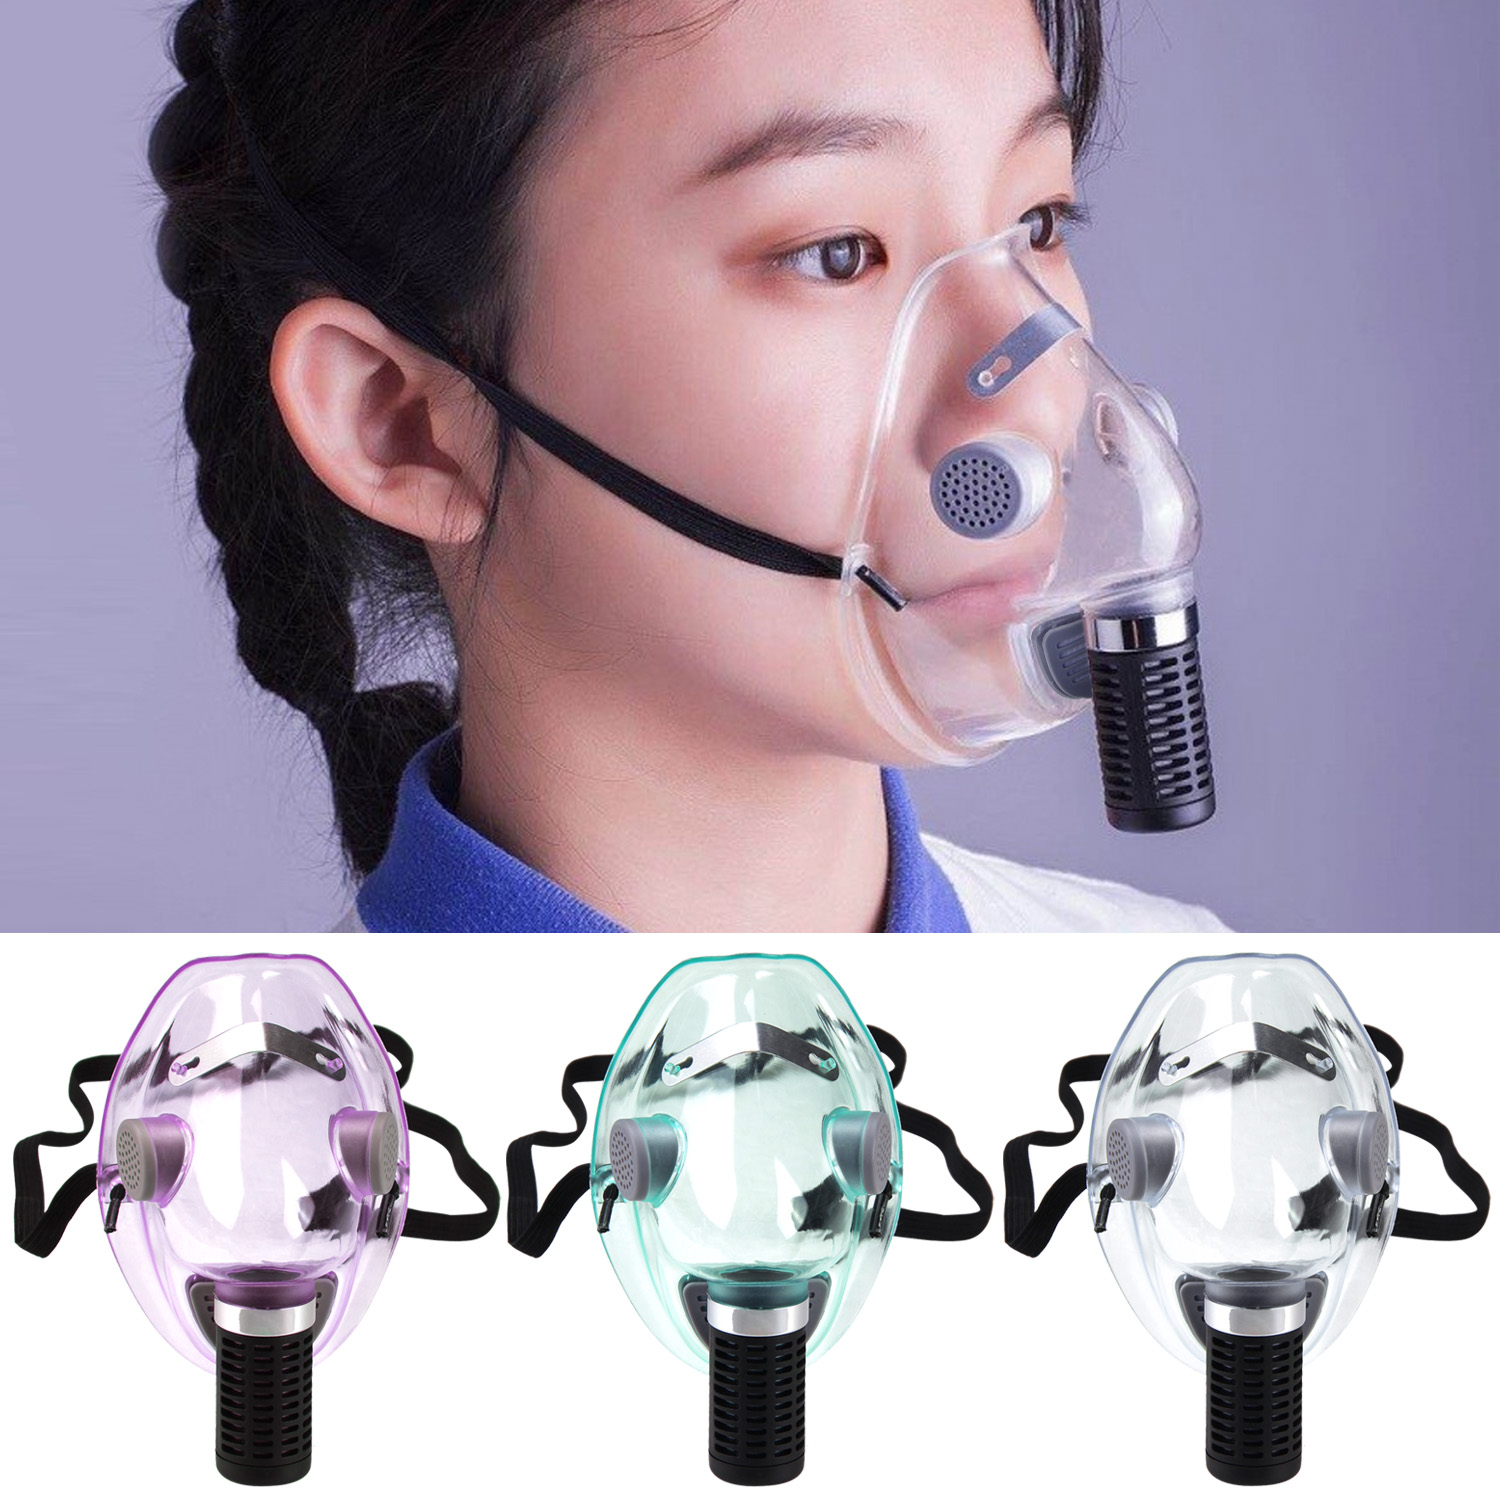 Reusable Silicone Face Protective Masks Anti Dust Mouth Mask Personal Protective Equipment With Filter For Outdoor Indoor